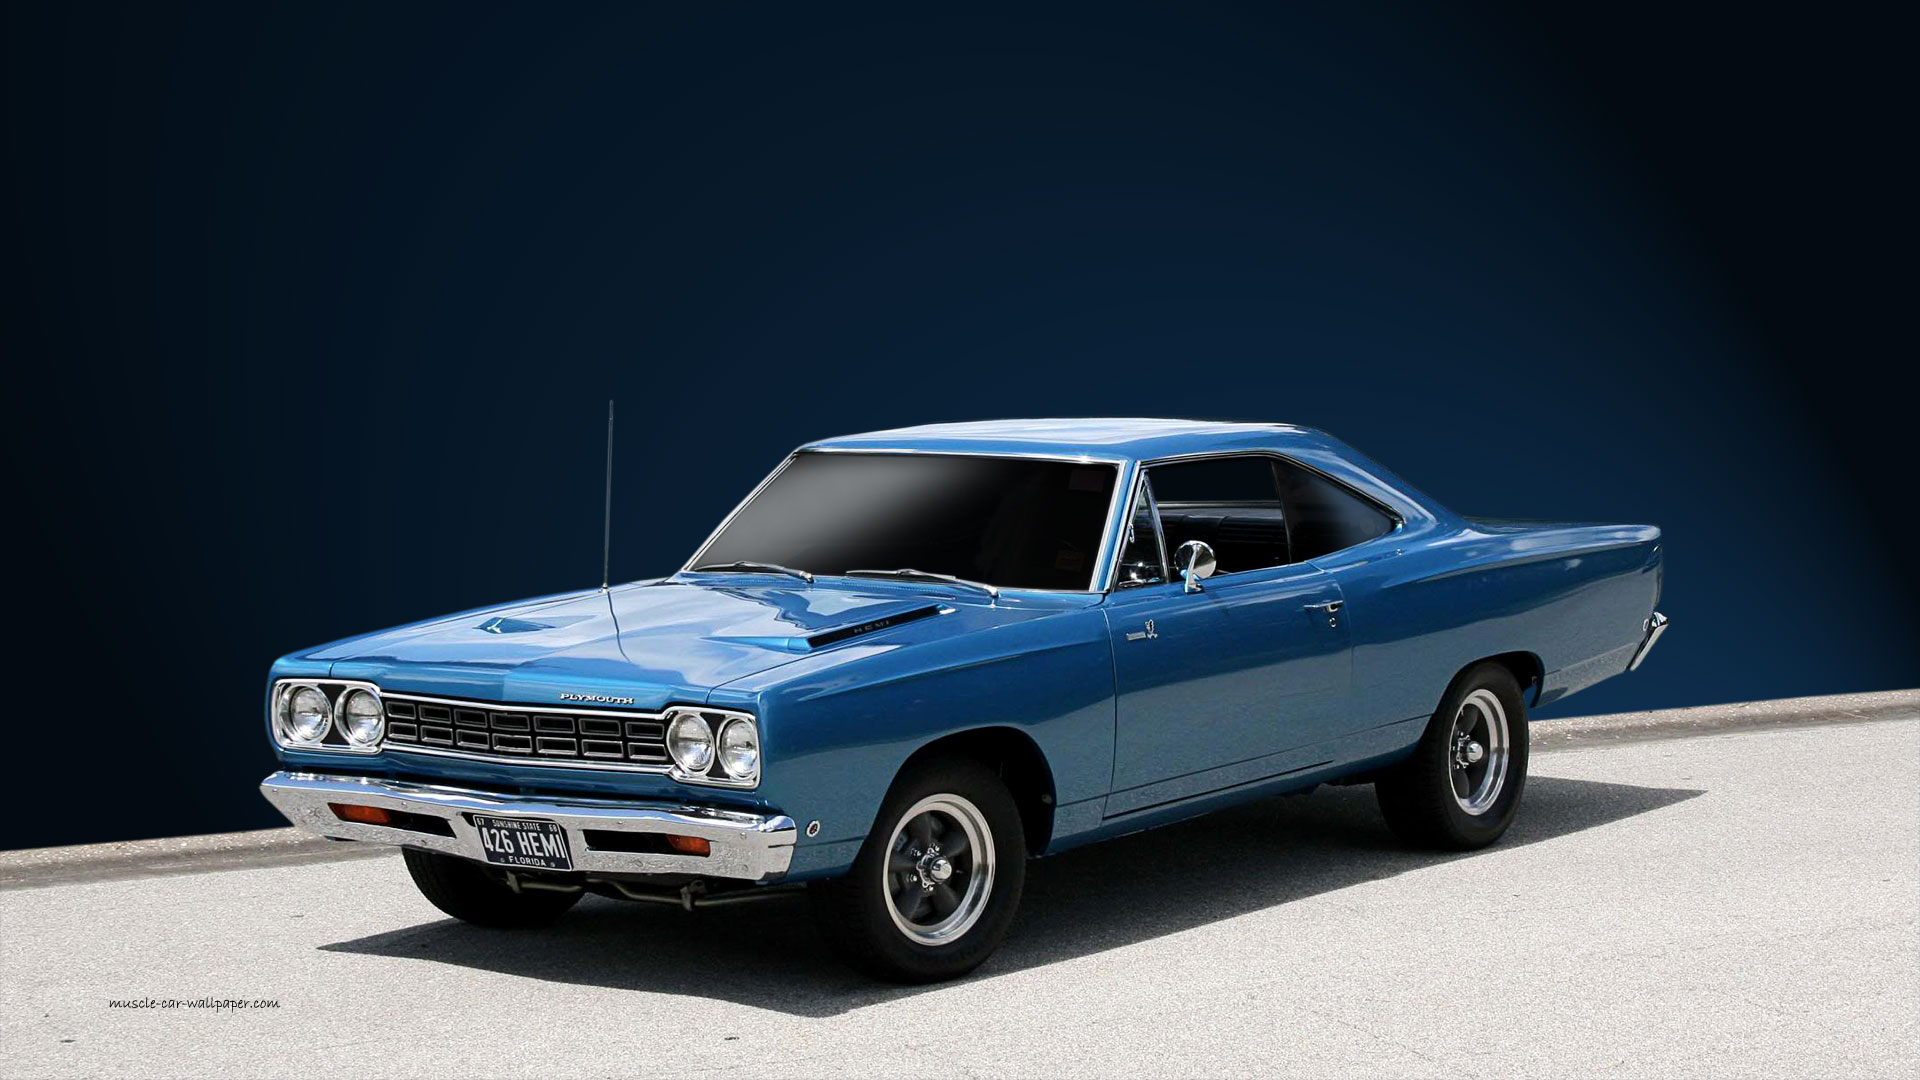 PLYMOUTH ROADRUNNER - 265px Image #11